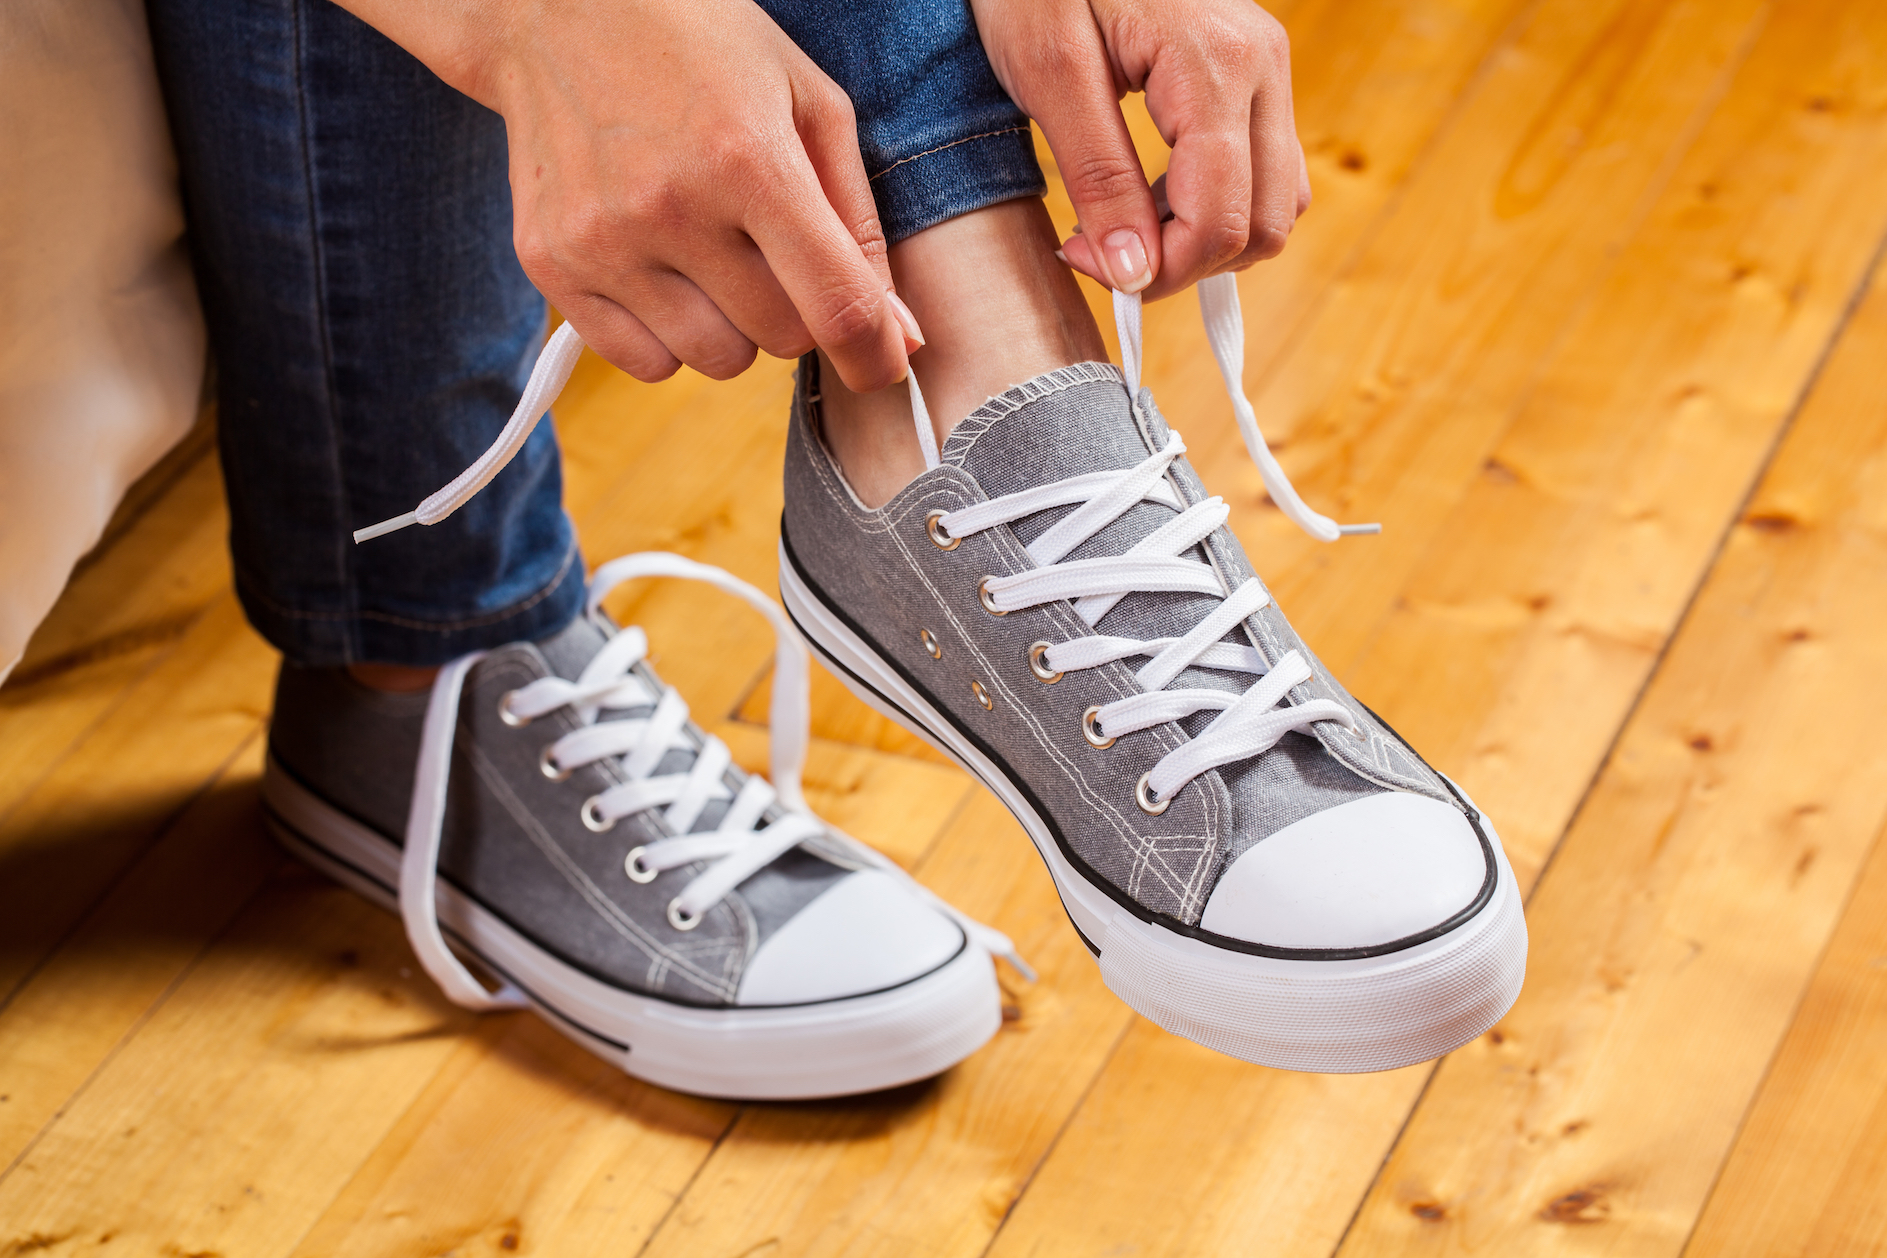 A team of mechanical engineers from UC Berkeley just came out with a study to show why your shoelaces may keep coming untied.